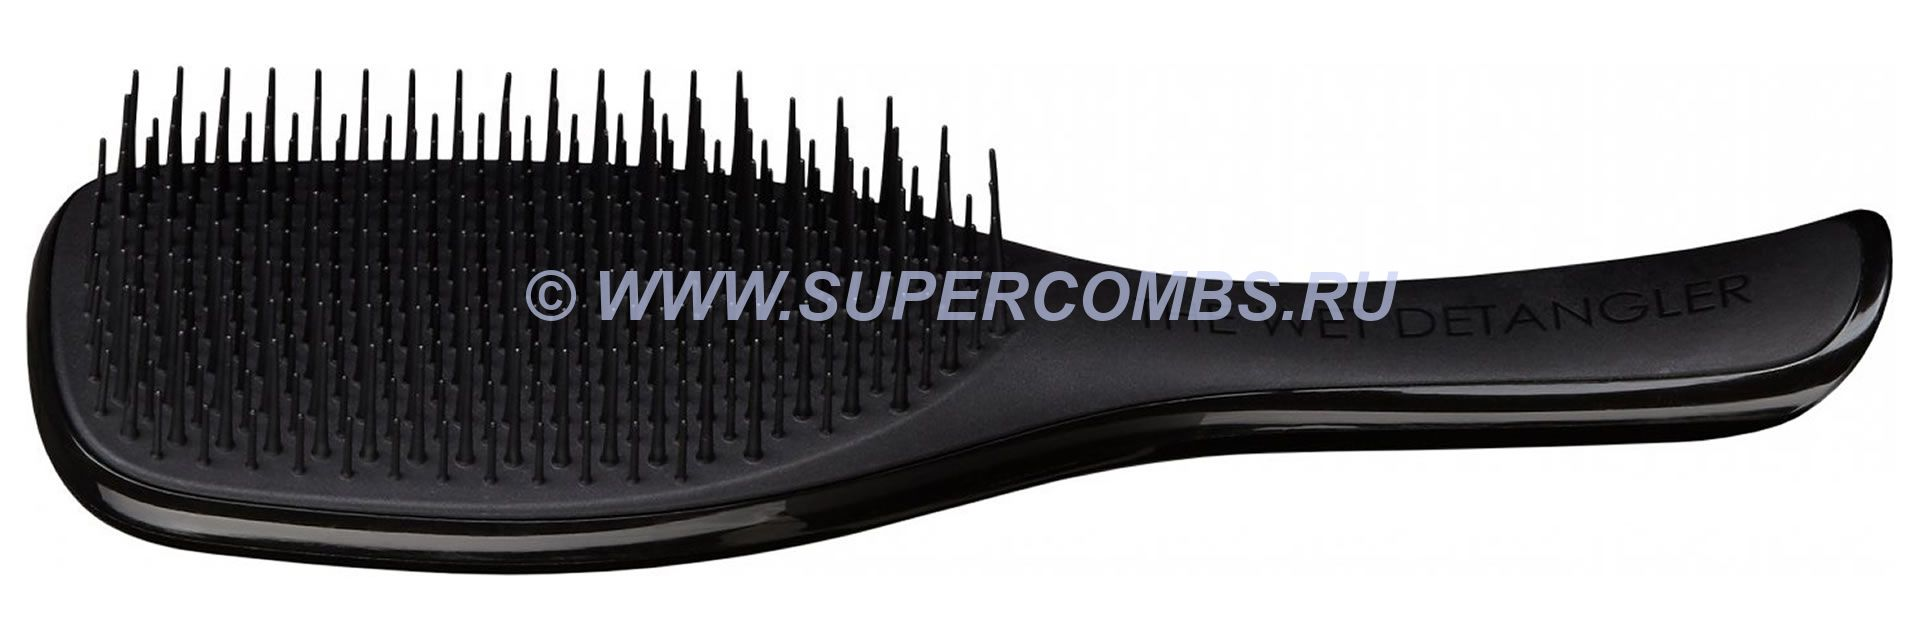 Щётка Tangle Teezer The Wet Detangler Midnight Black, чёрная